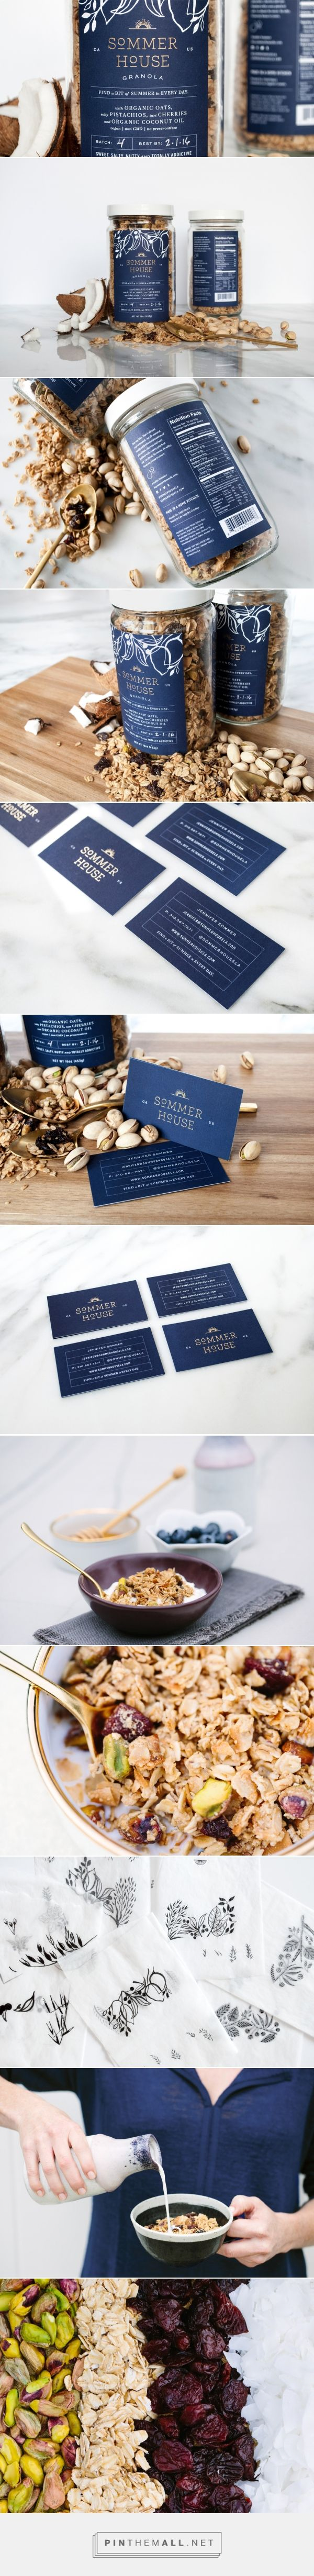 Sommer House Granola by Project M+ — The Dieline - Branding & Packaging